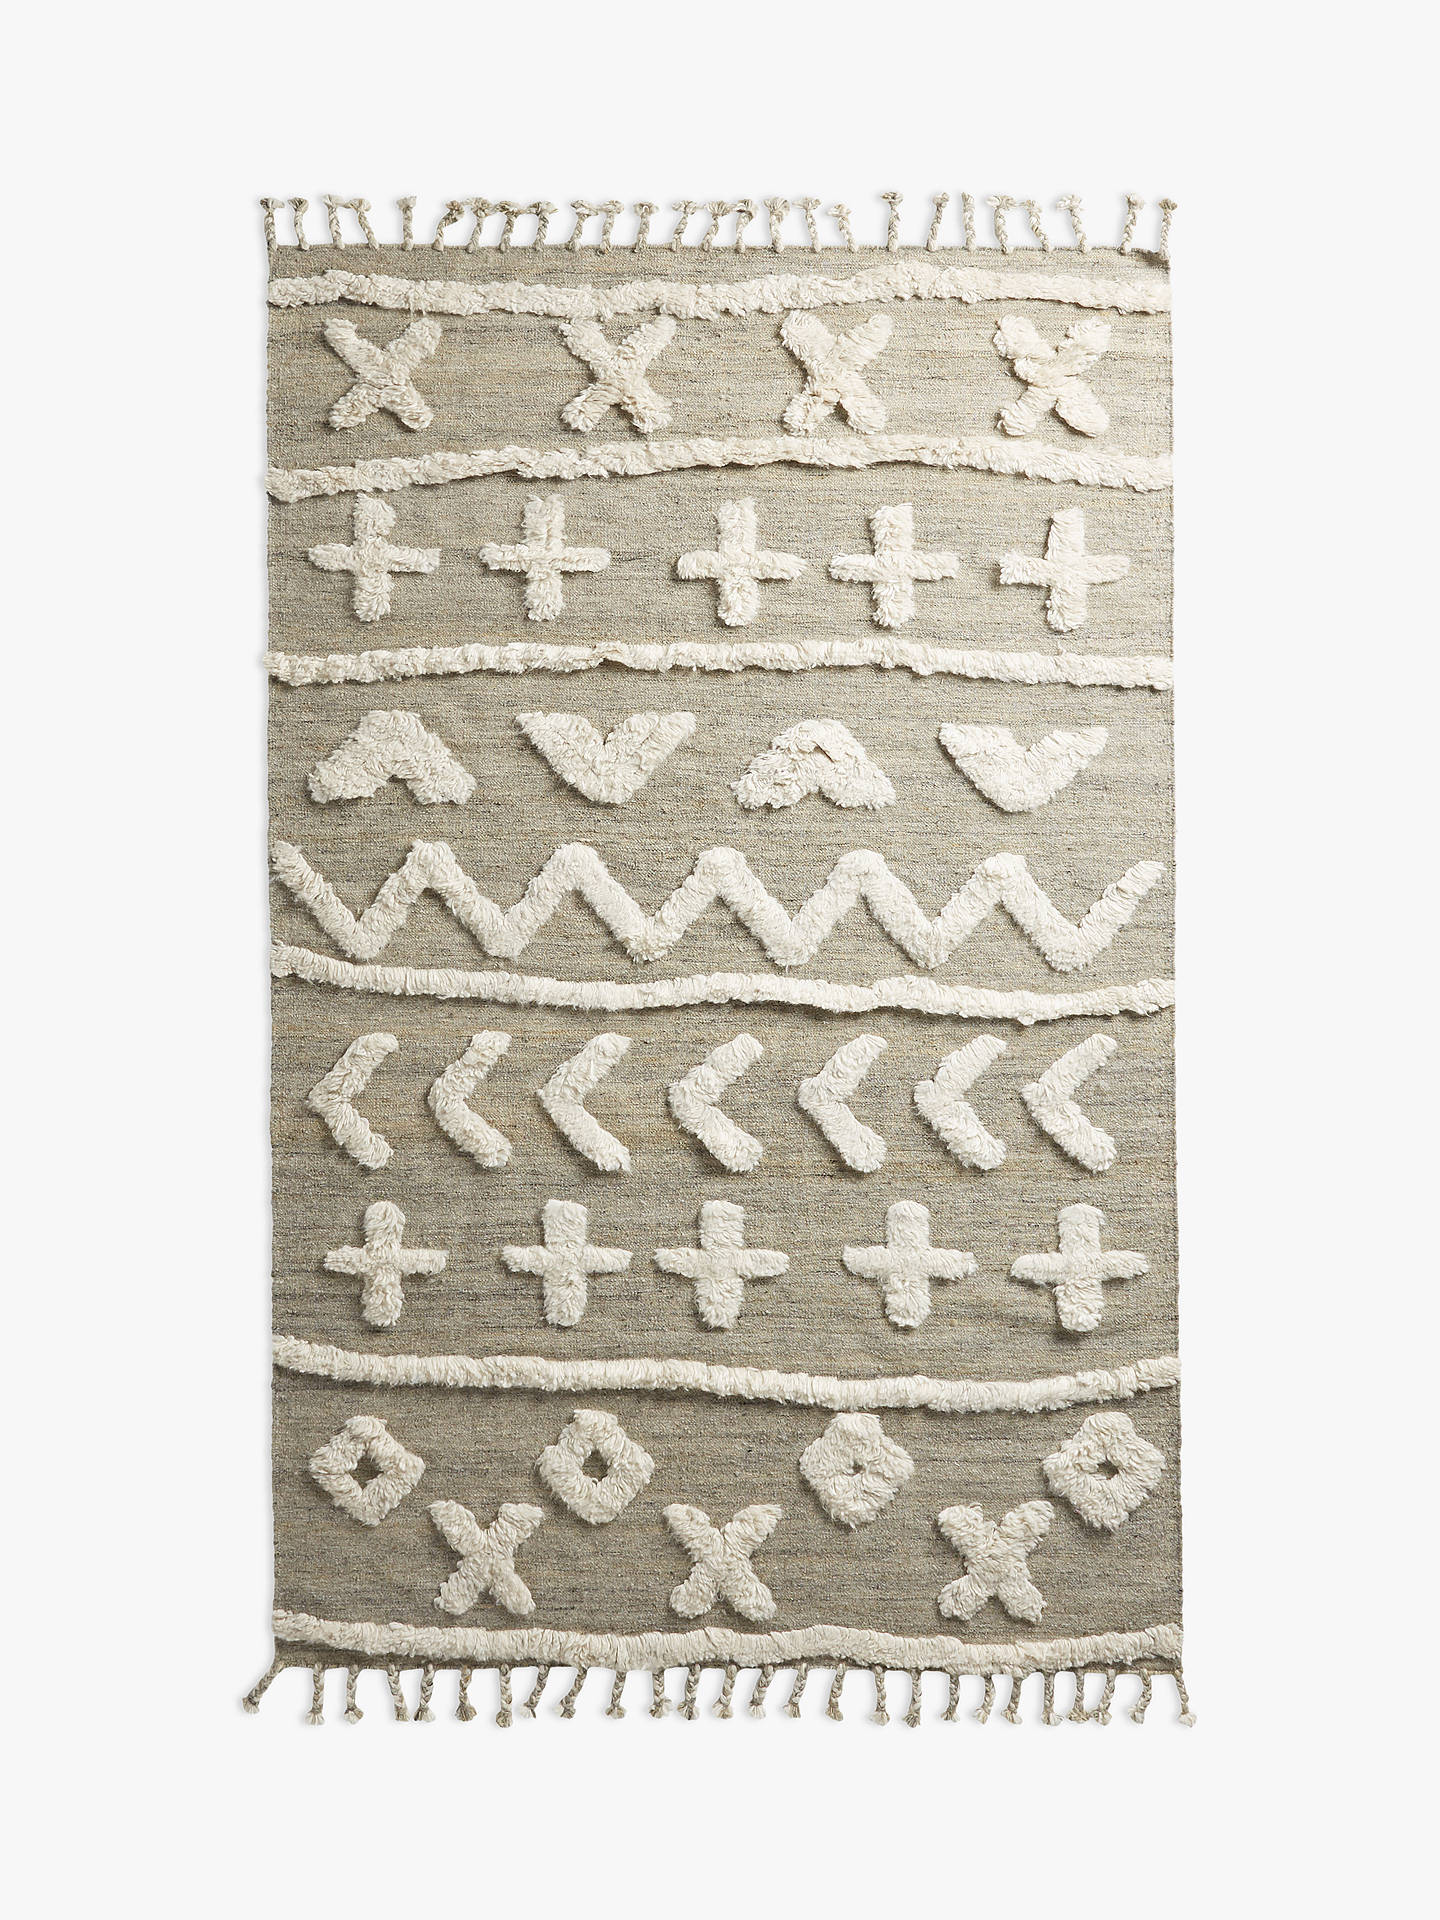 Anthropologie Minna Tufted Wool Rug L200 X W130cm Online At Johnlewis